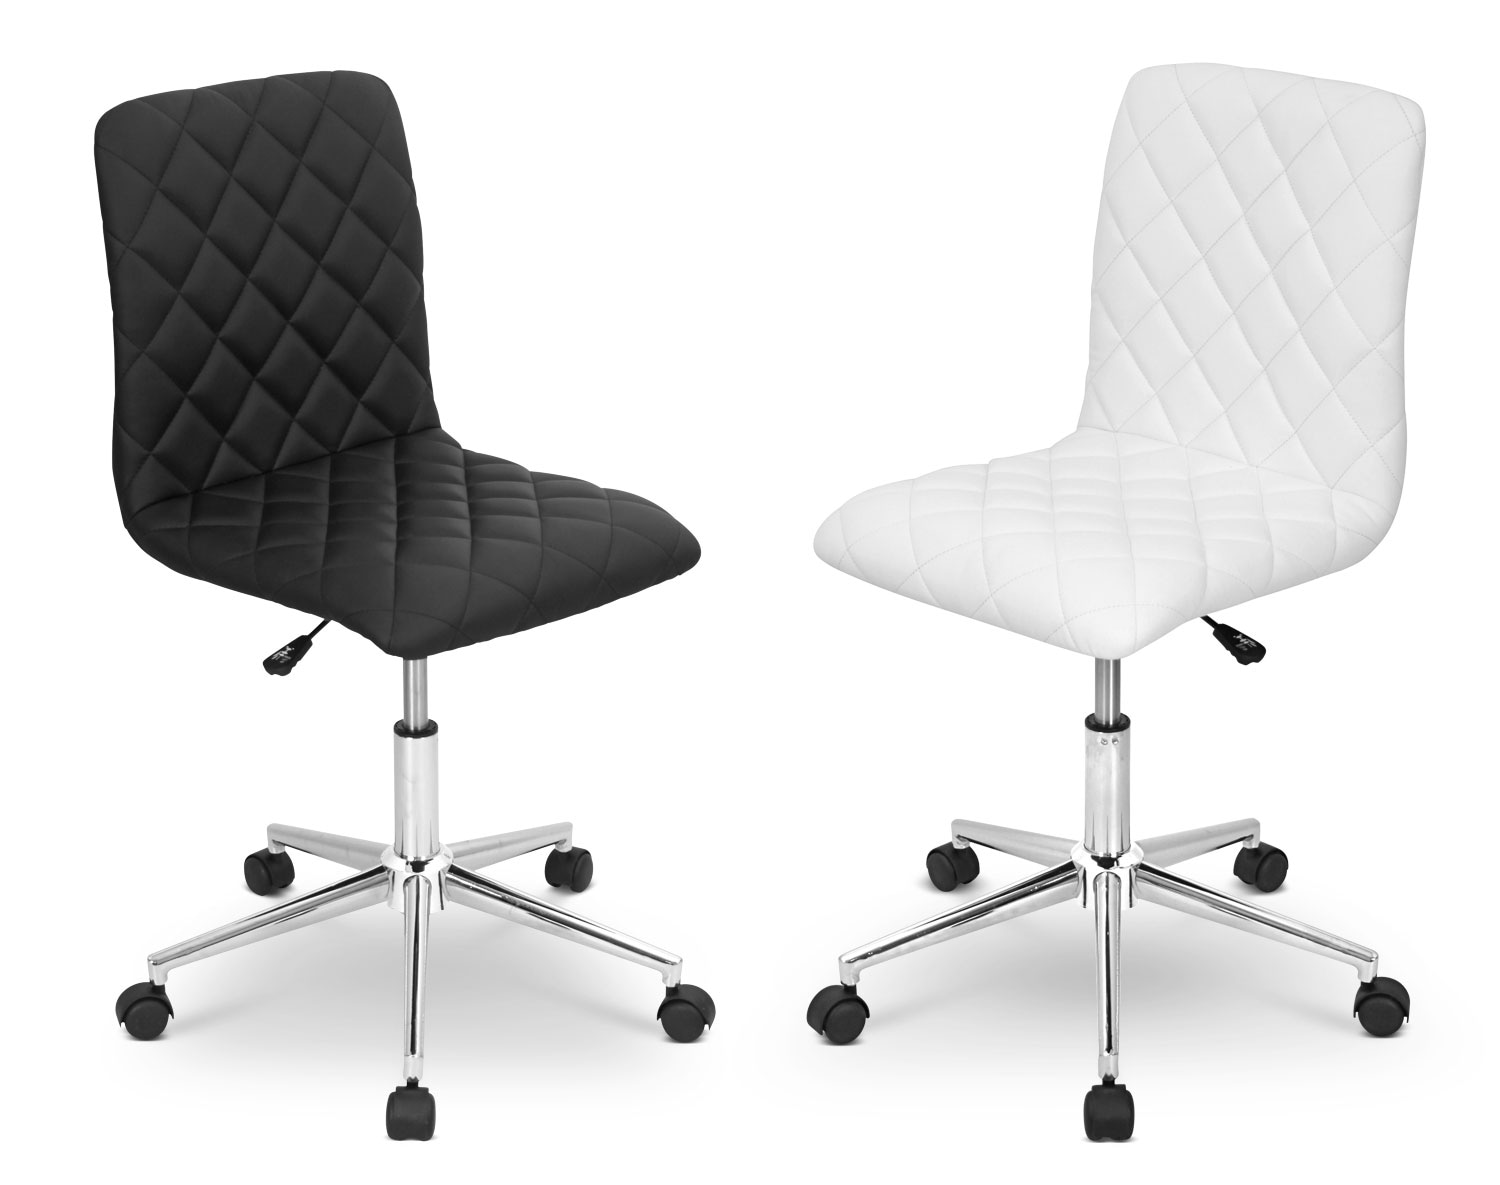 The Trent Office Chair Collection